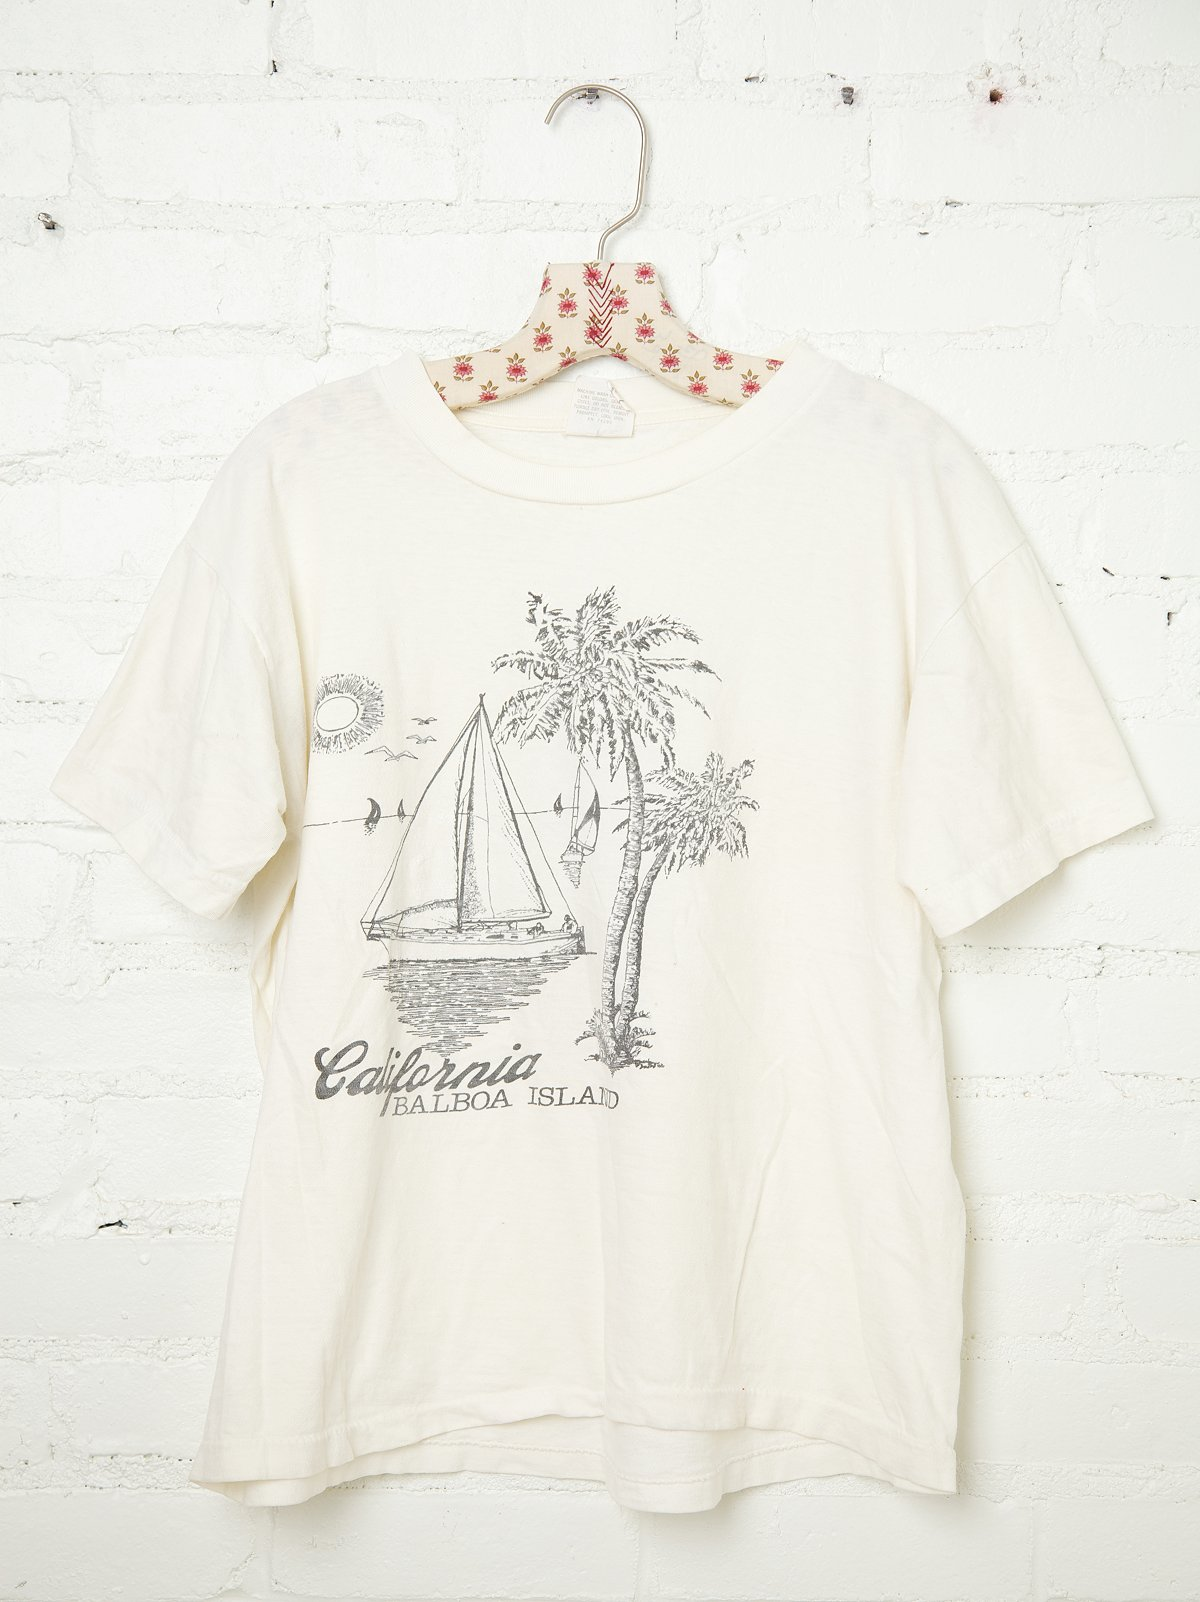 Vintage California Sailboat Tee